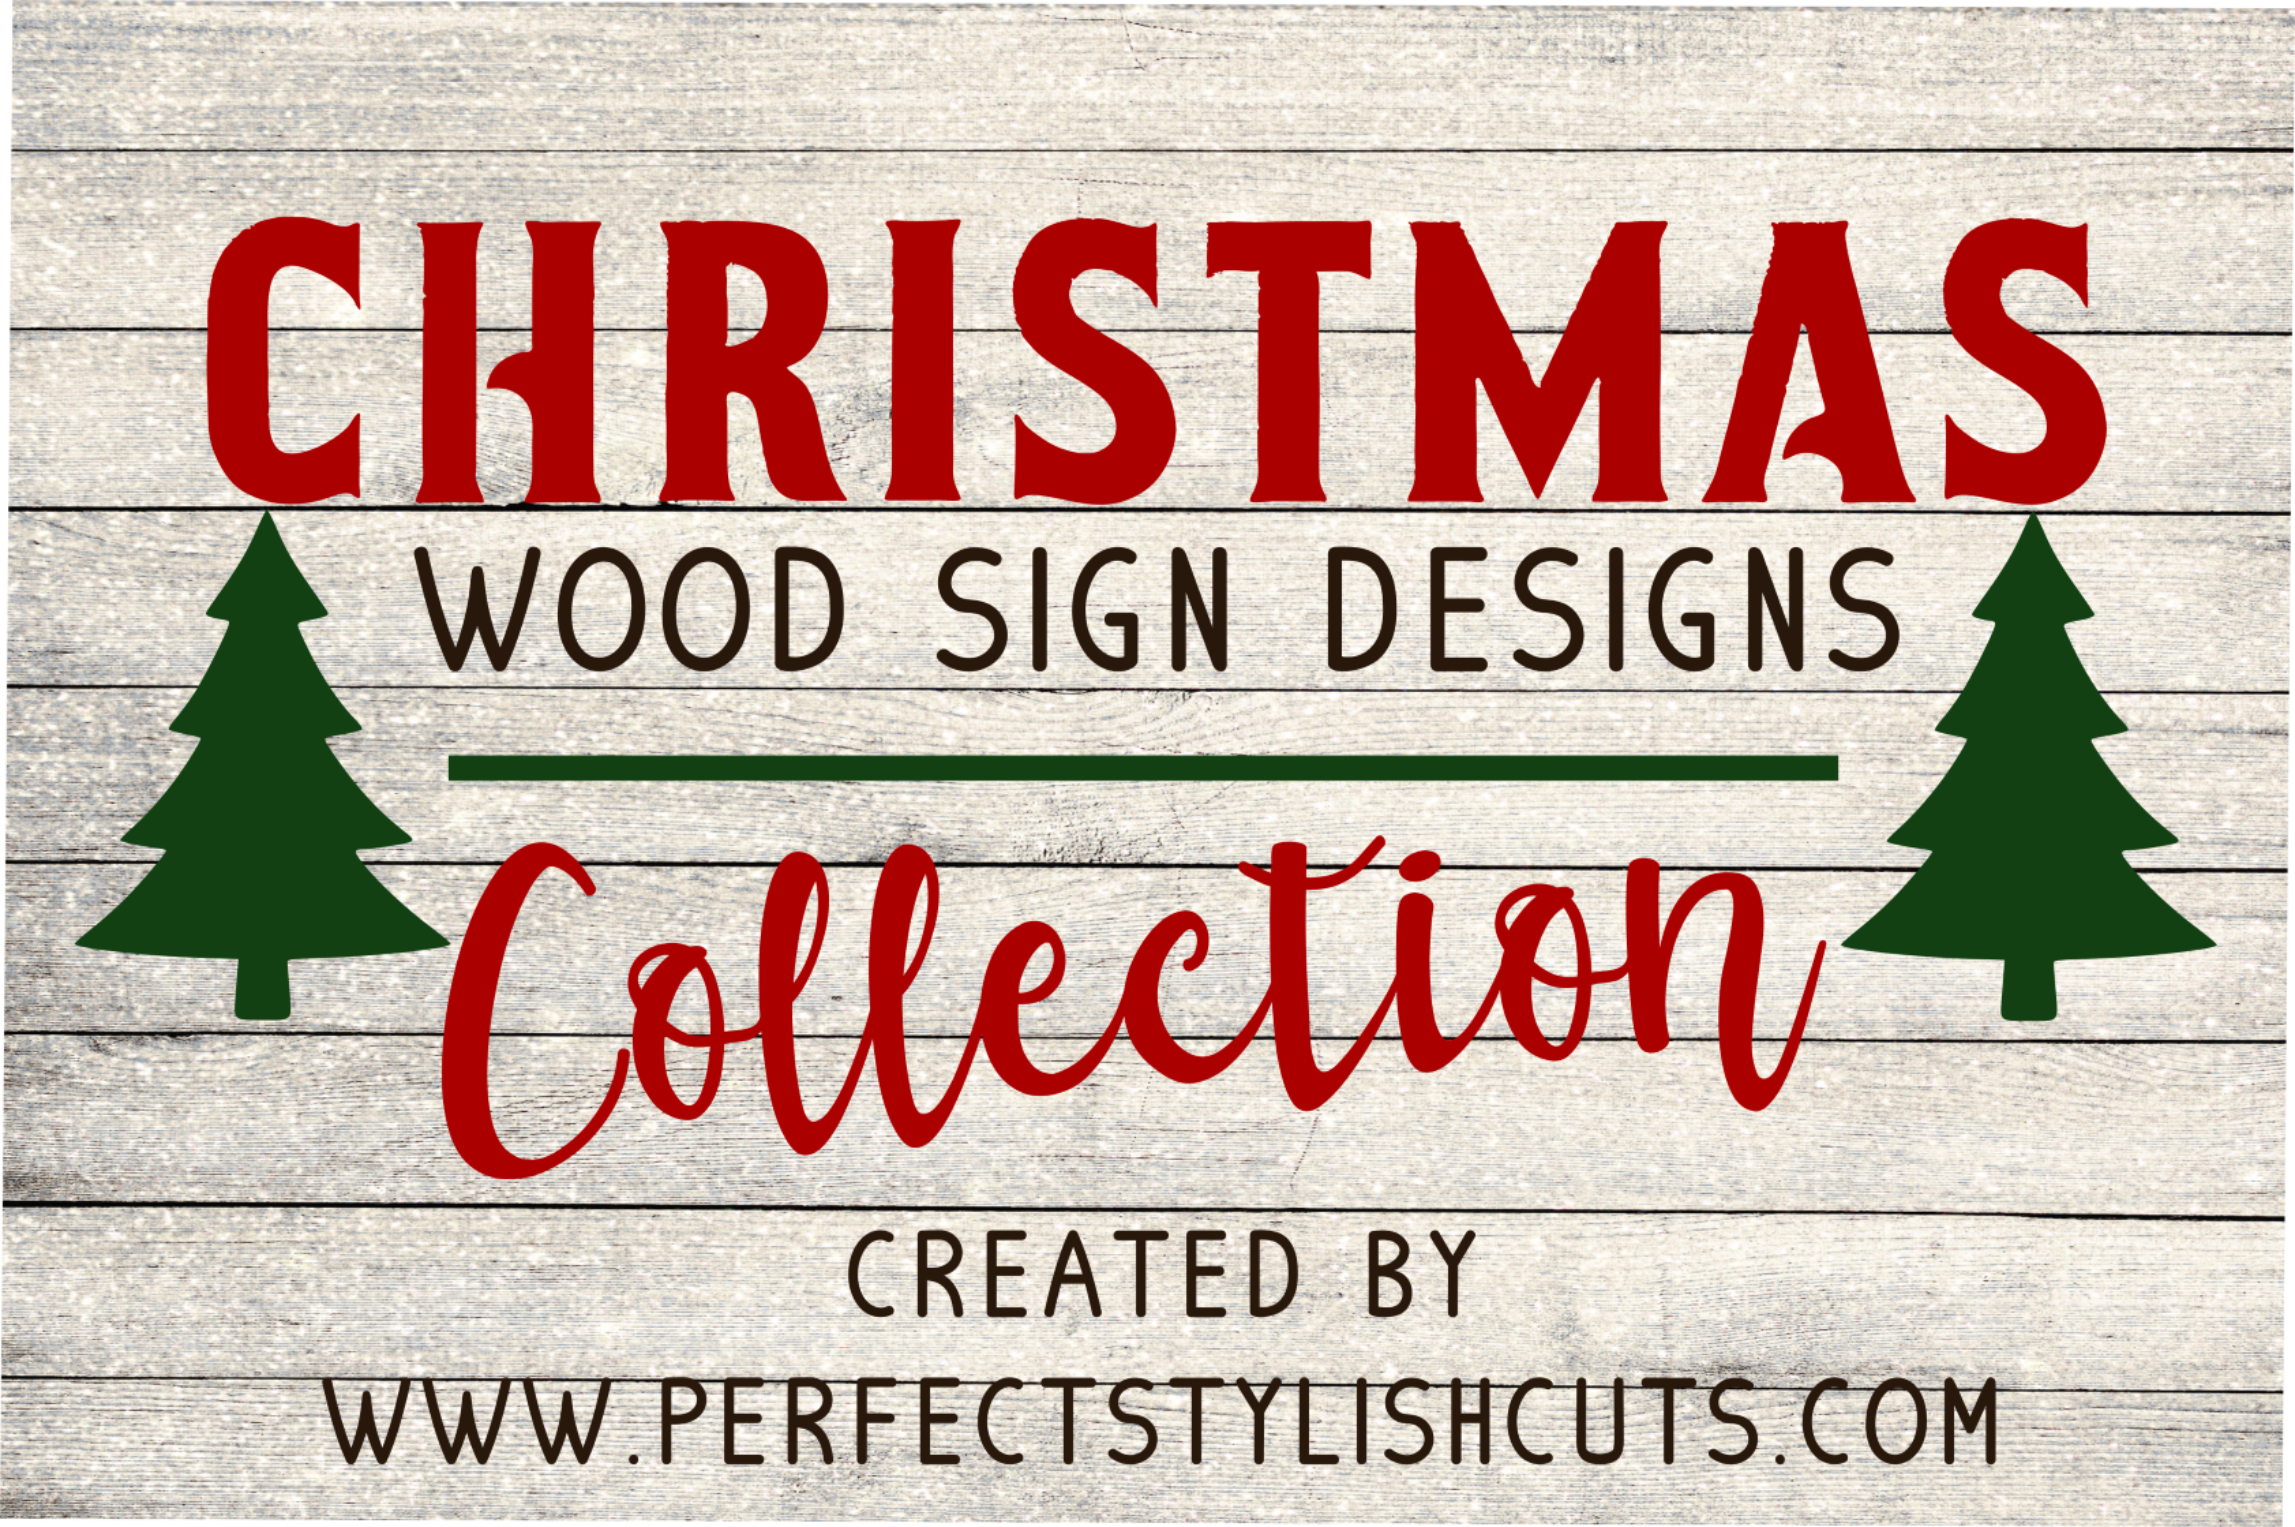 Christmas Wood Sign Designs Collection - SVG, EPS, DXF, PNG Files For Cutting Machines example image 1